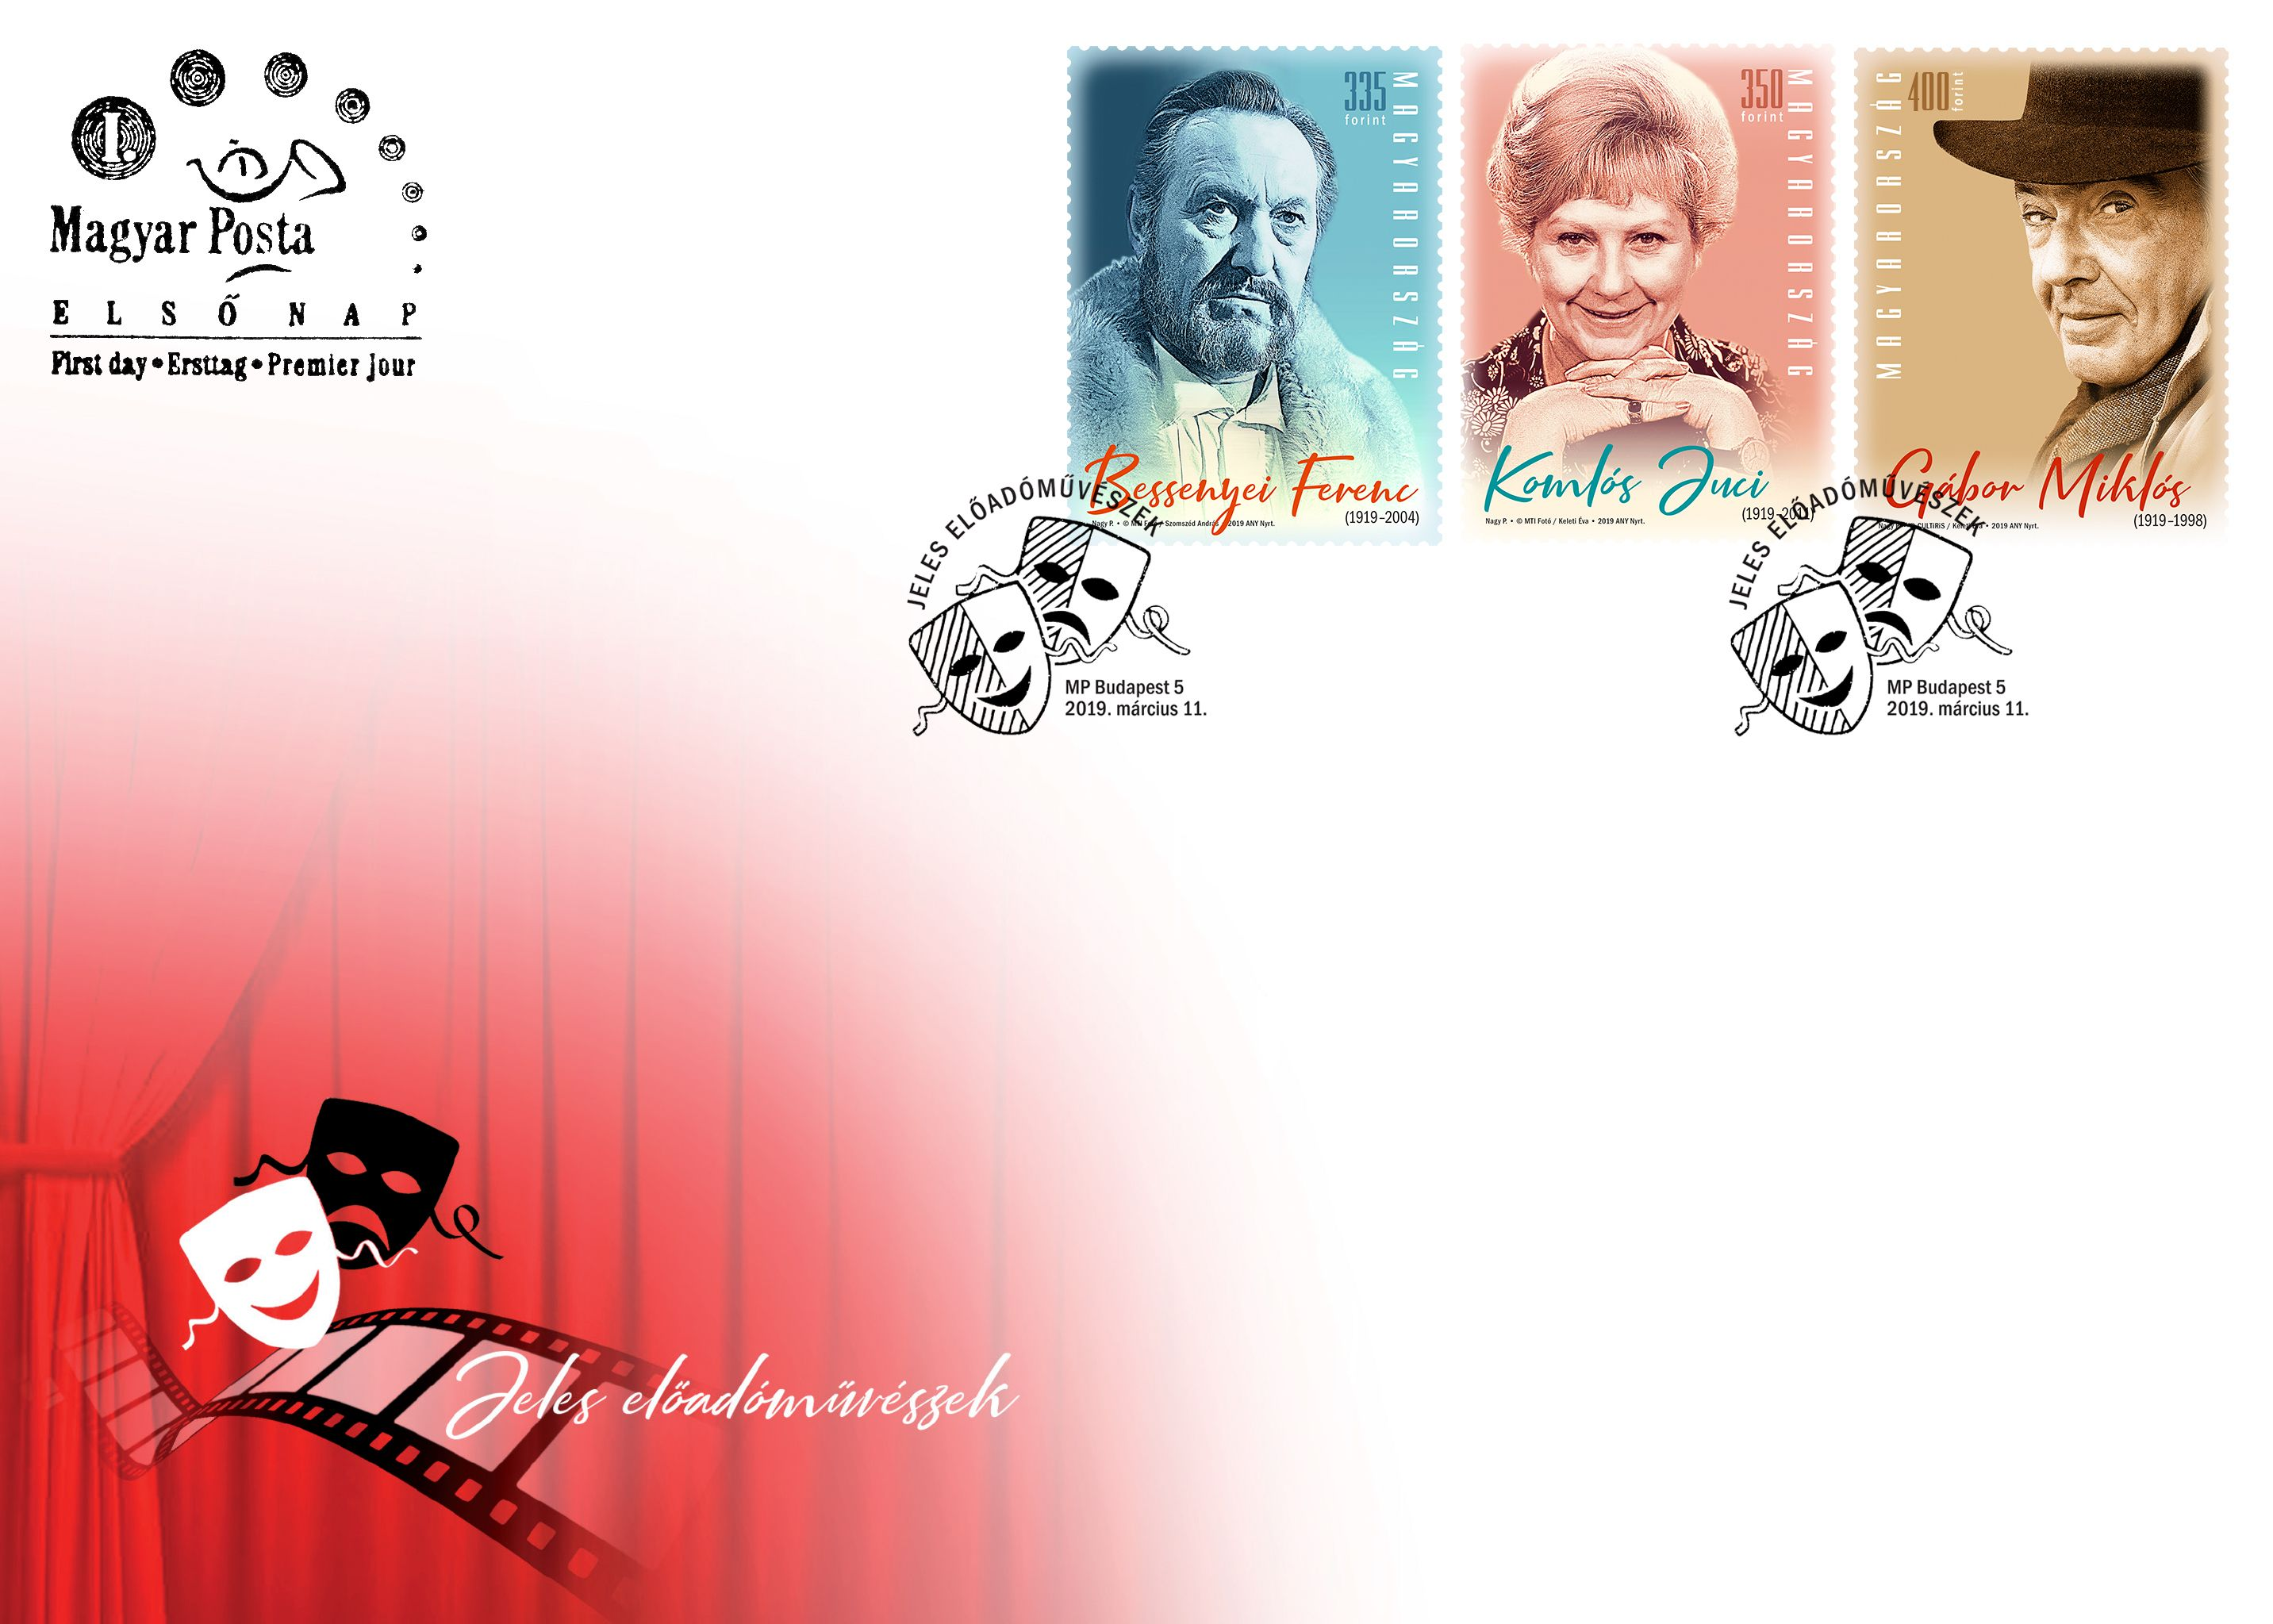 Famous Hungarian performers:centenary of the birth of Ferenc Bessenyei, Juci Jomlós  and Miklós Gábor